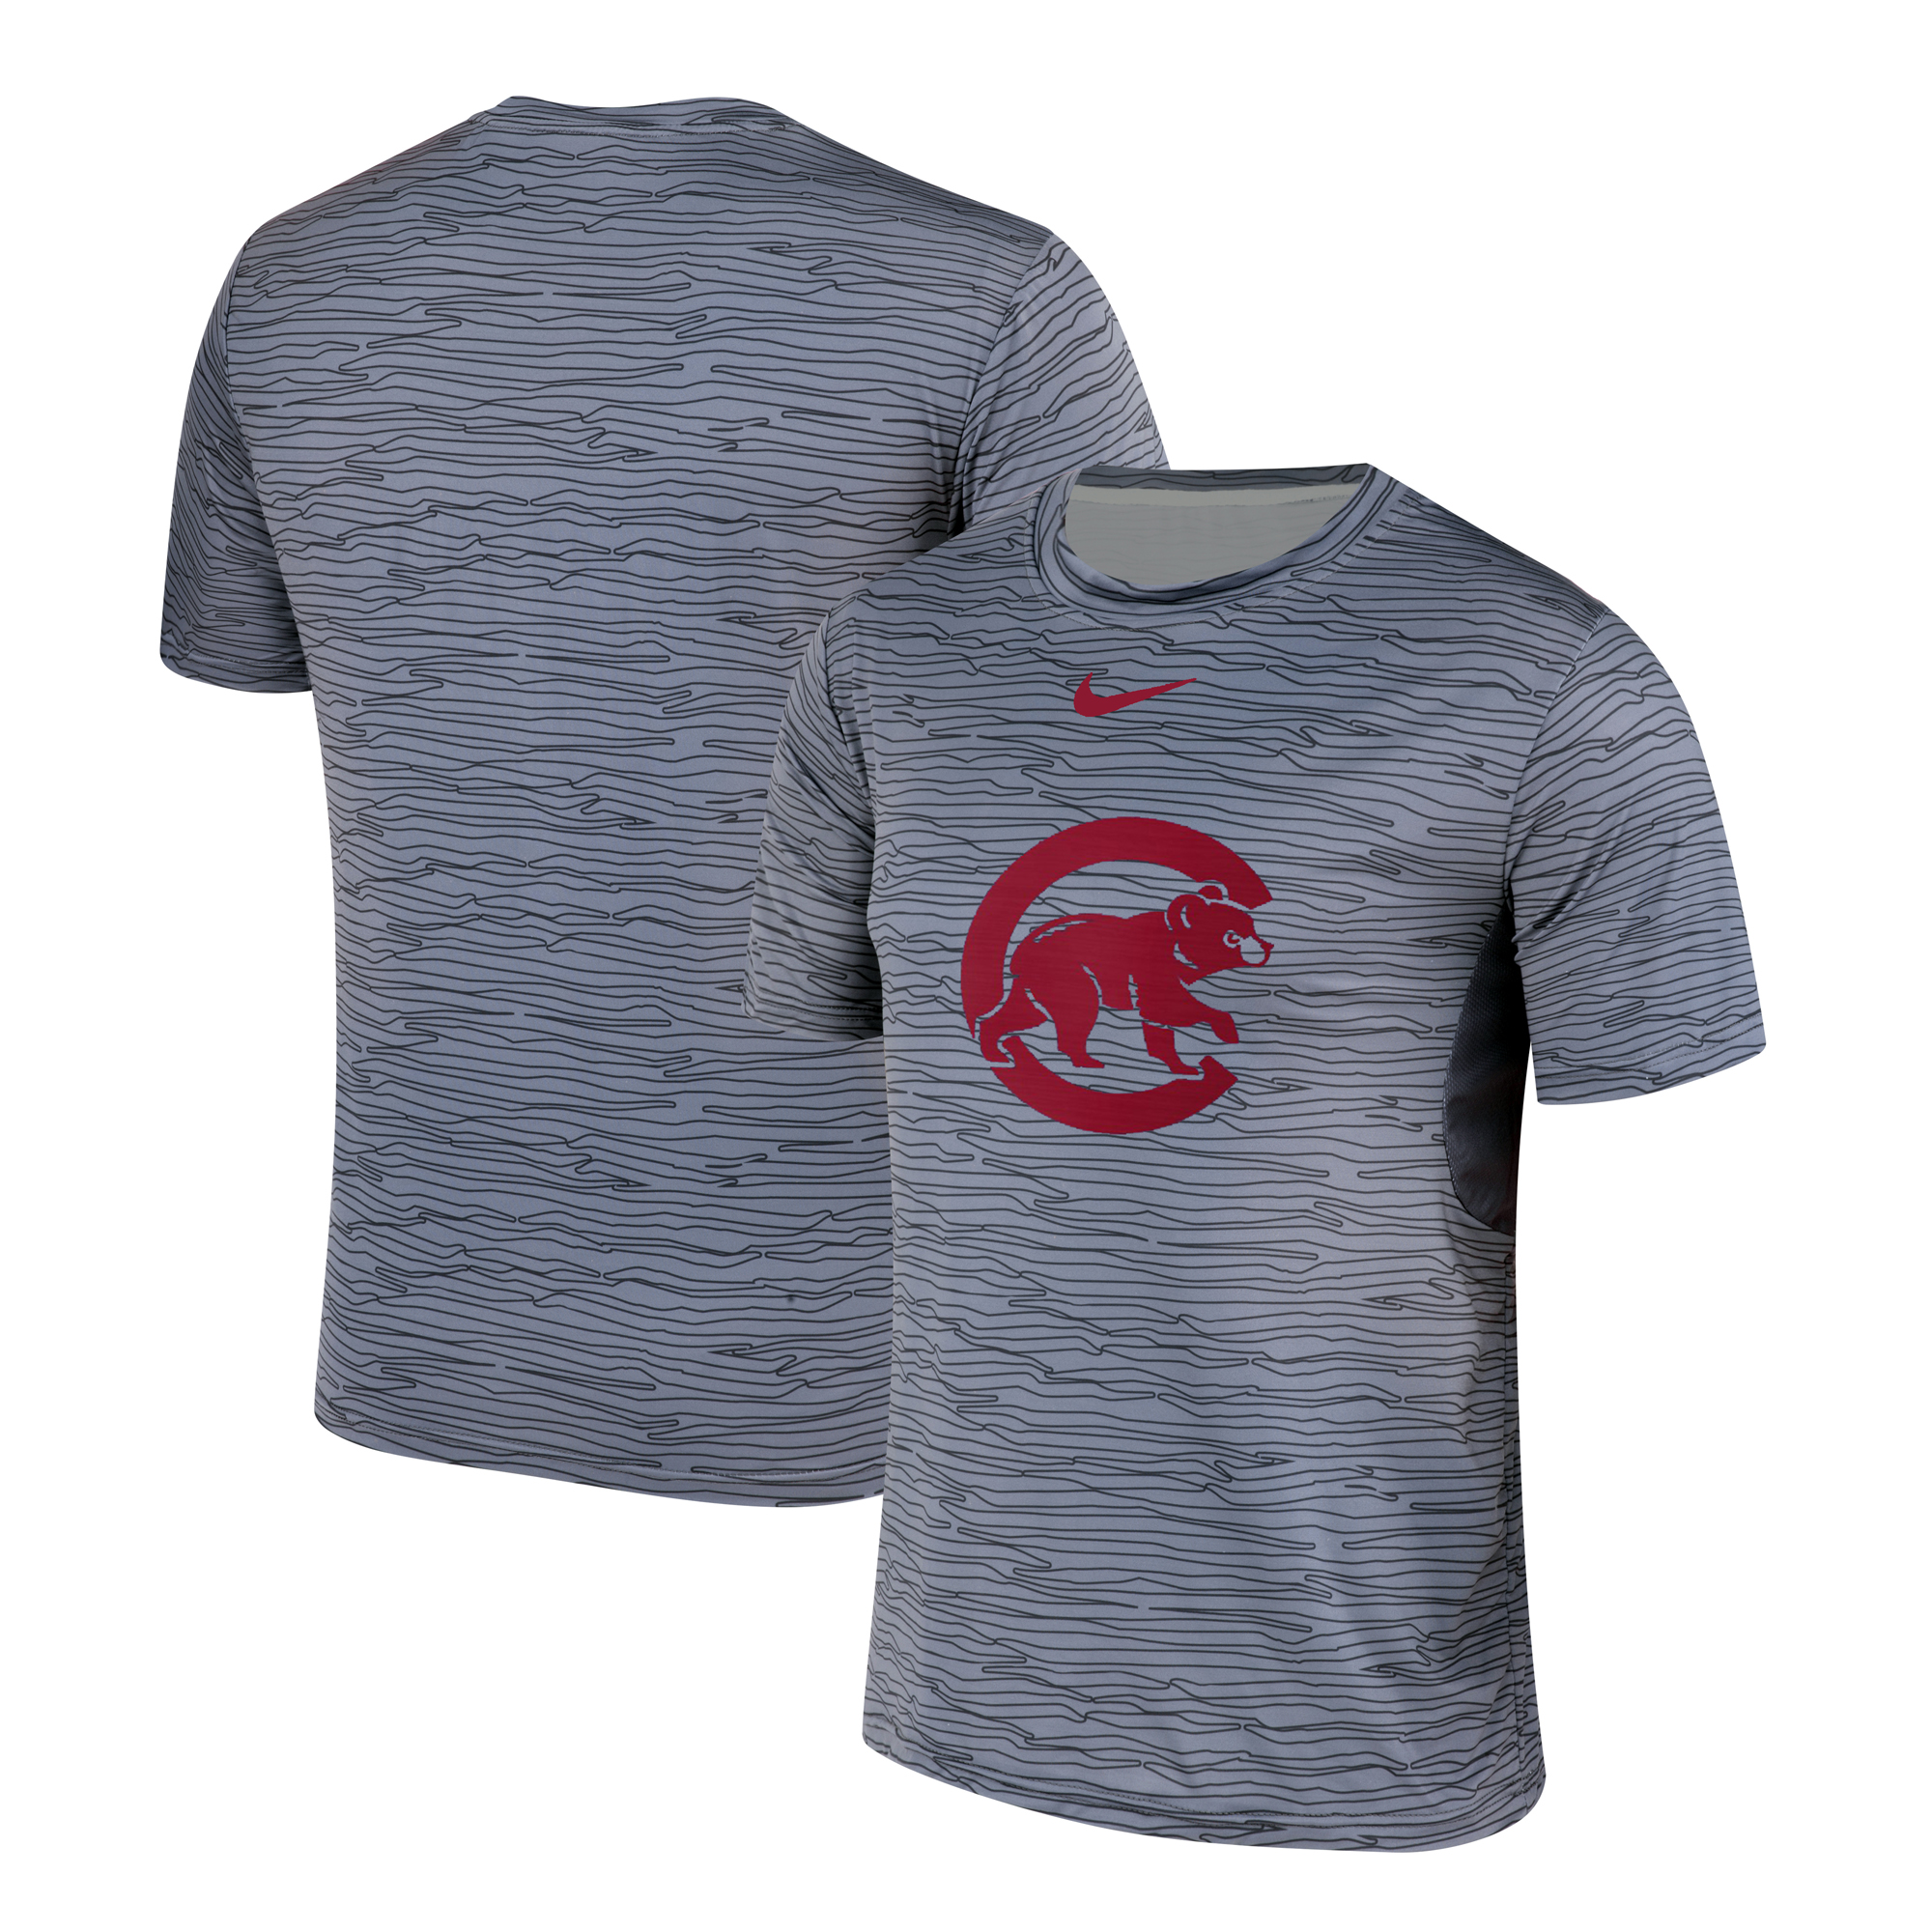 Nike Chicago Cubs Gray Black Striped Logo Performance T-Shirt